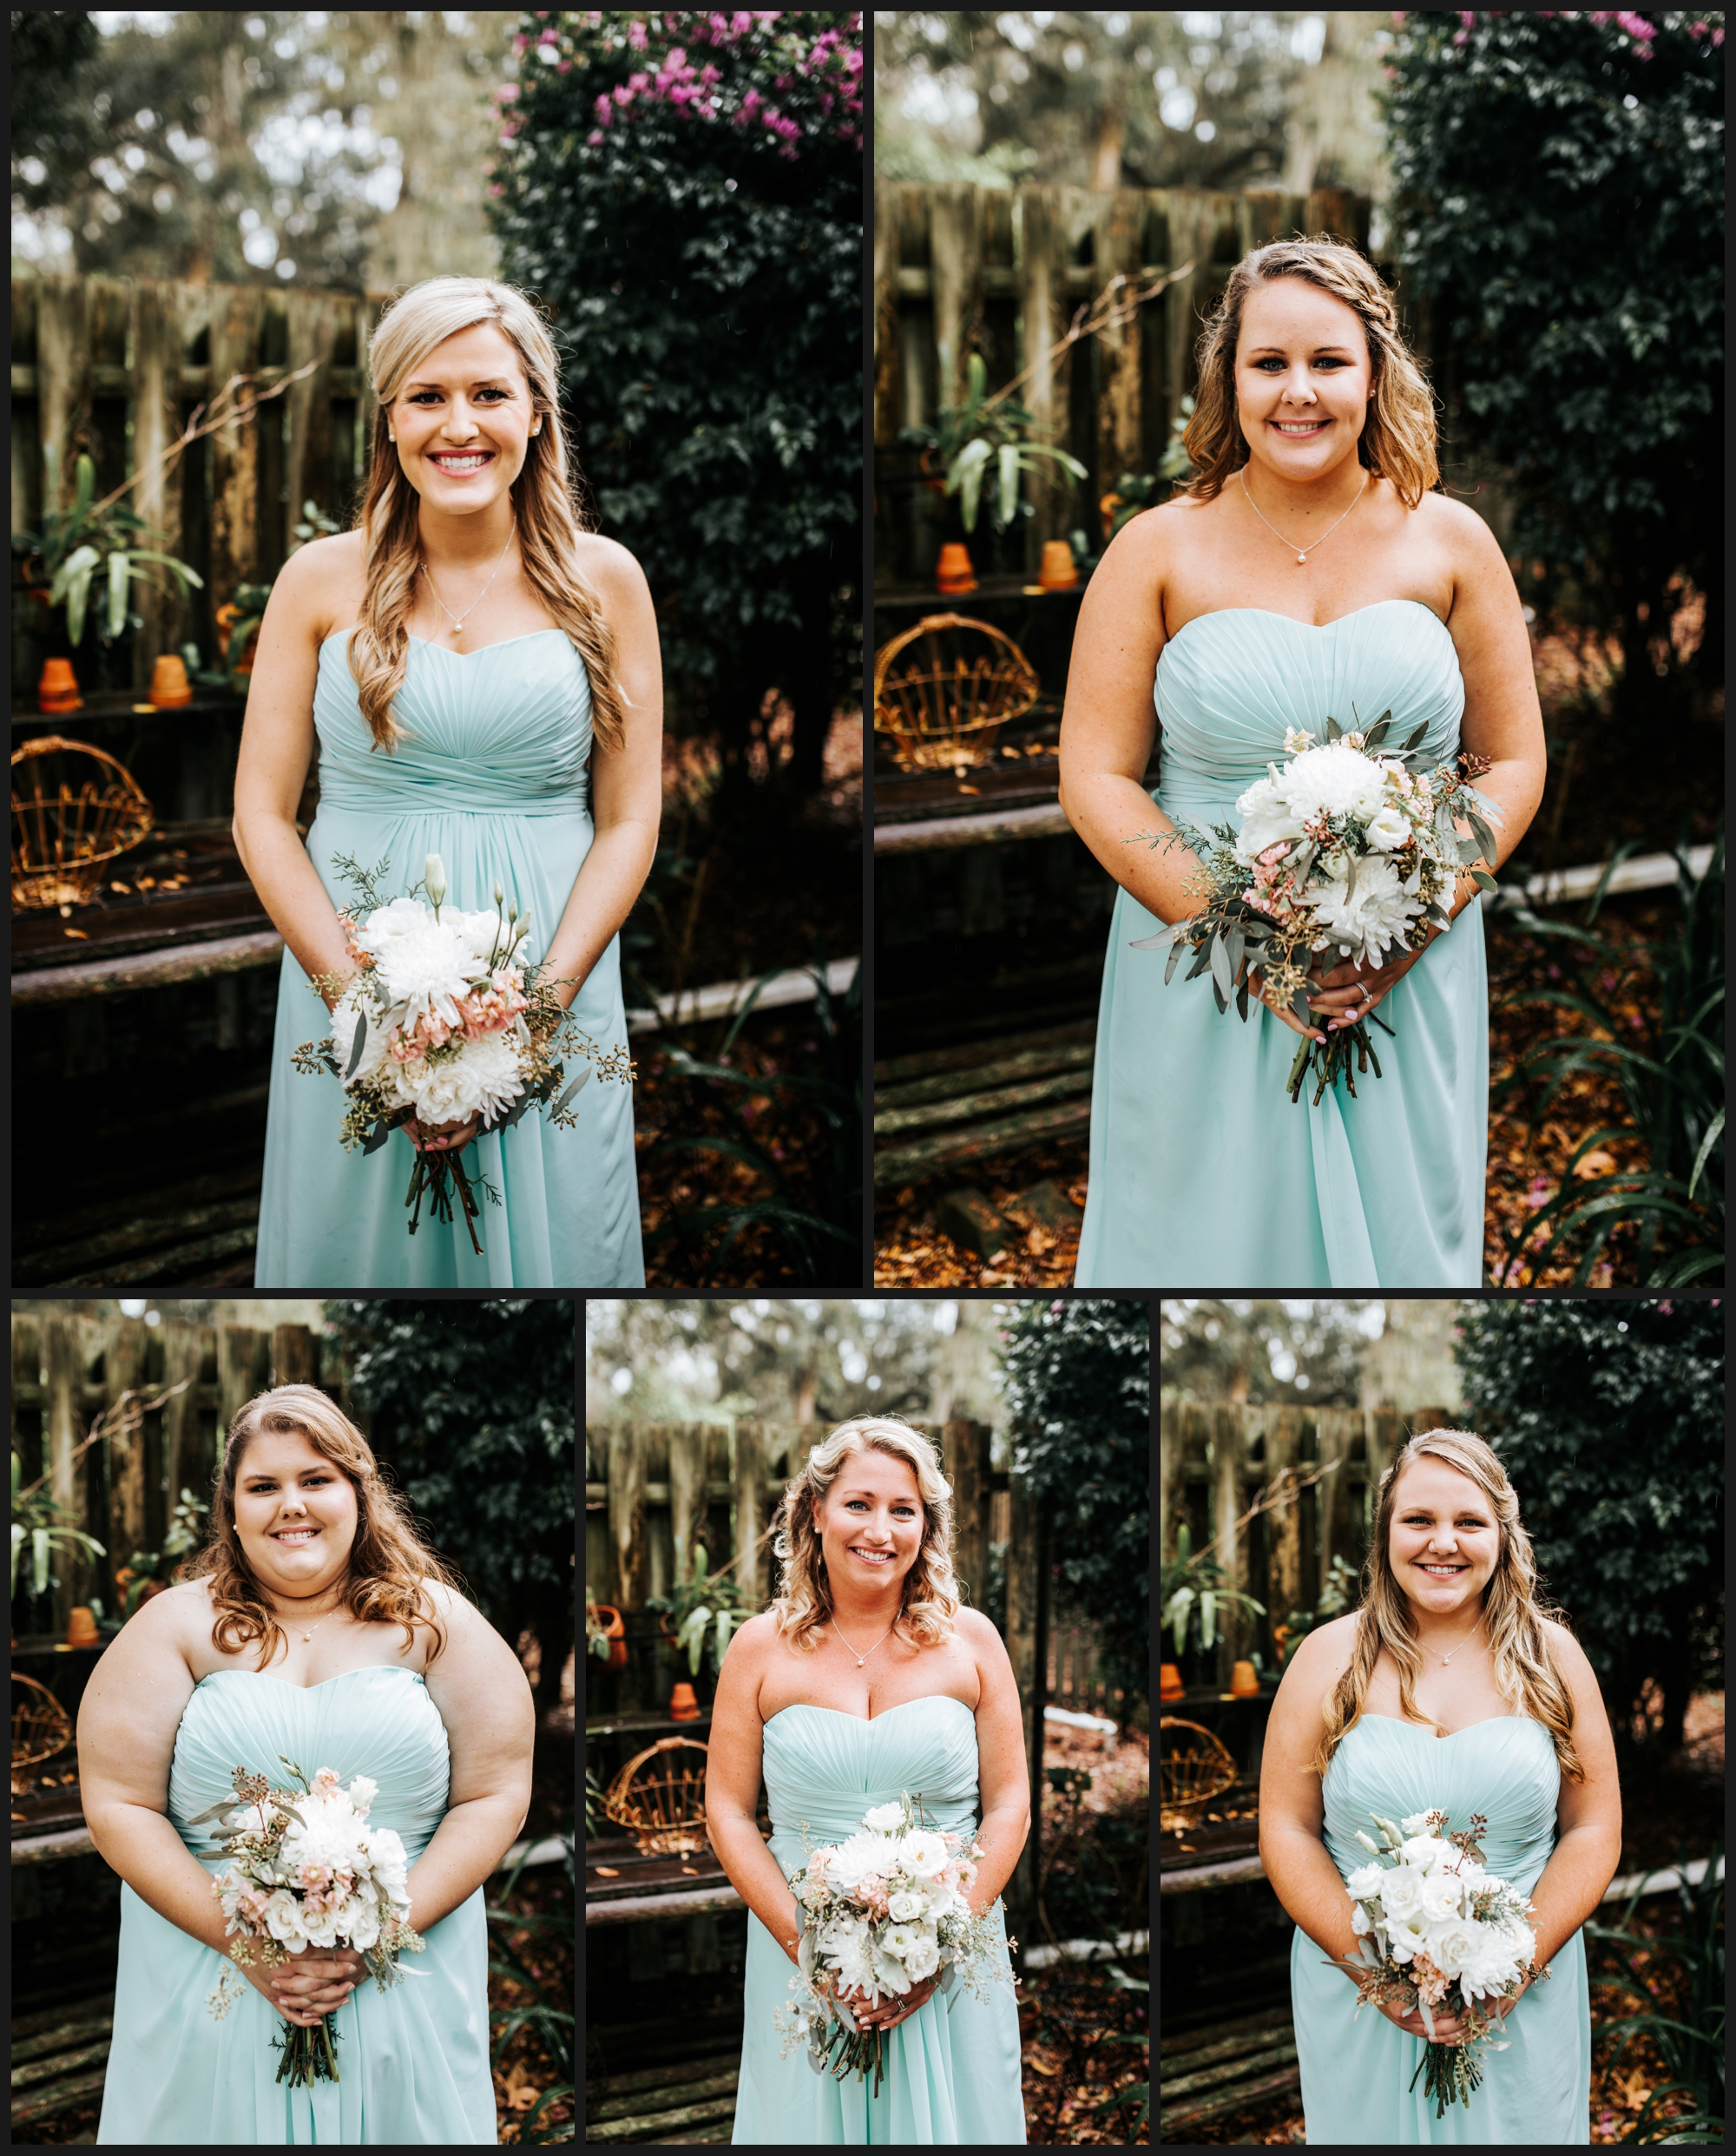 OrlandoWeddingPhotographerMattSierra_0010.jpg